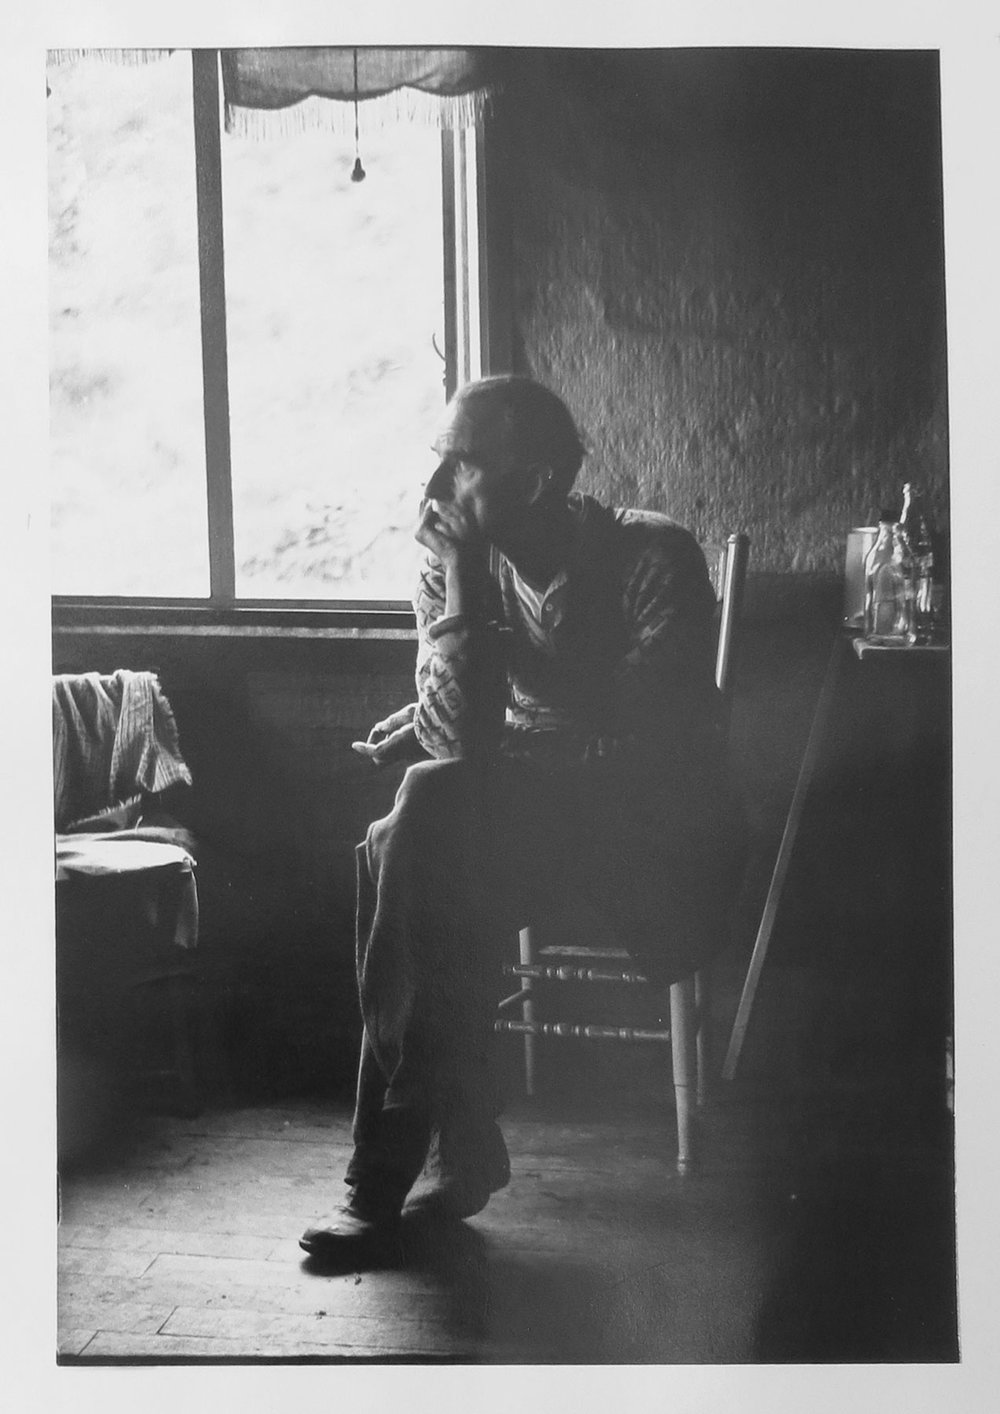 7. Richard Woldendorp, 'Mr Adams, Gosnells WA', BW245, taken and printed in 1963, Vintage Print